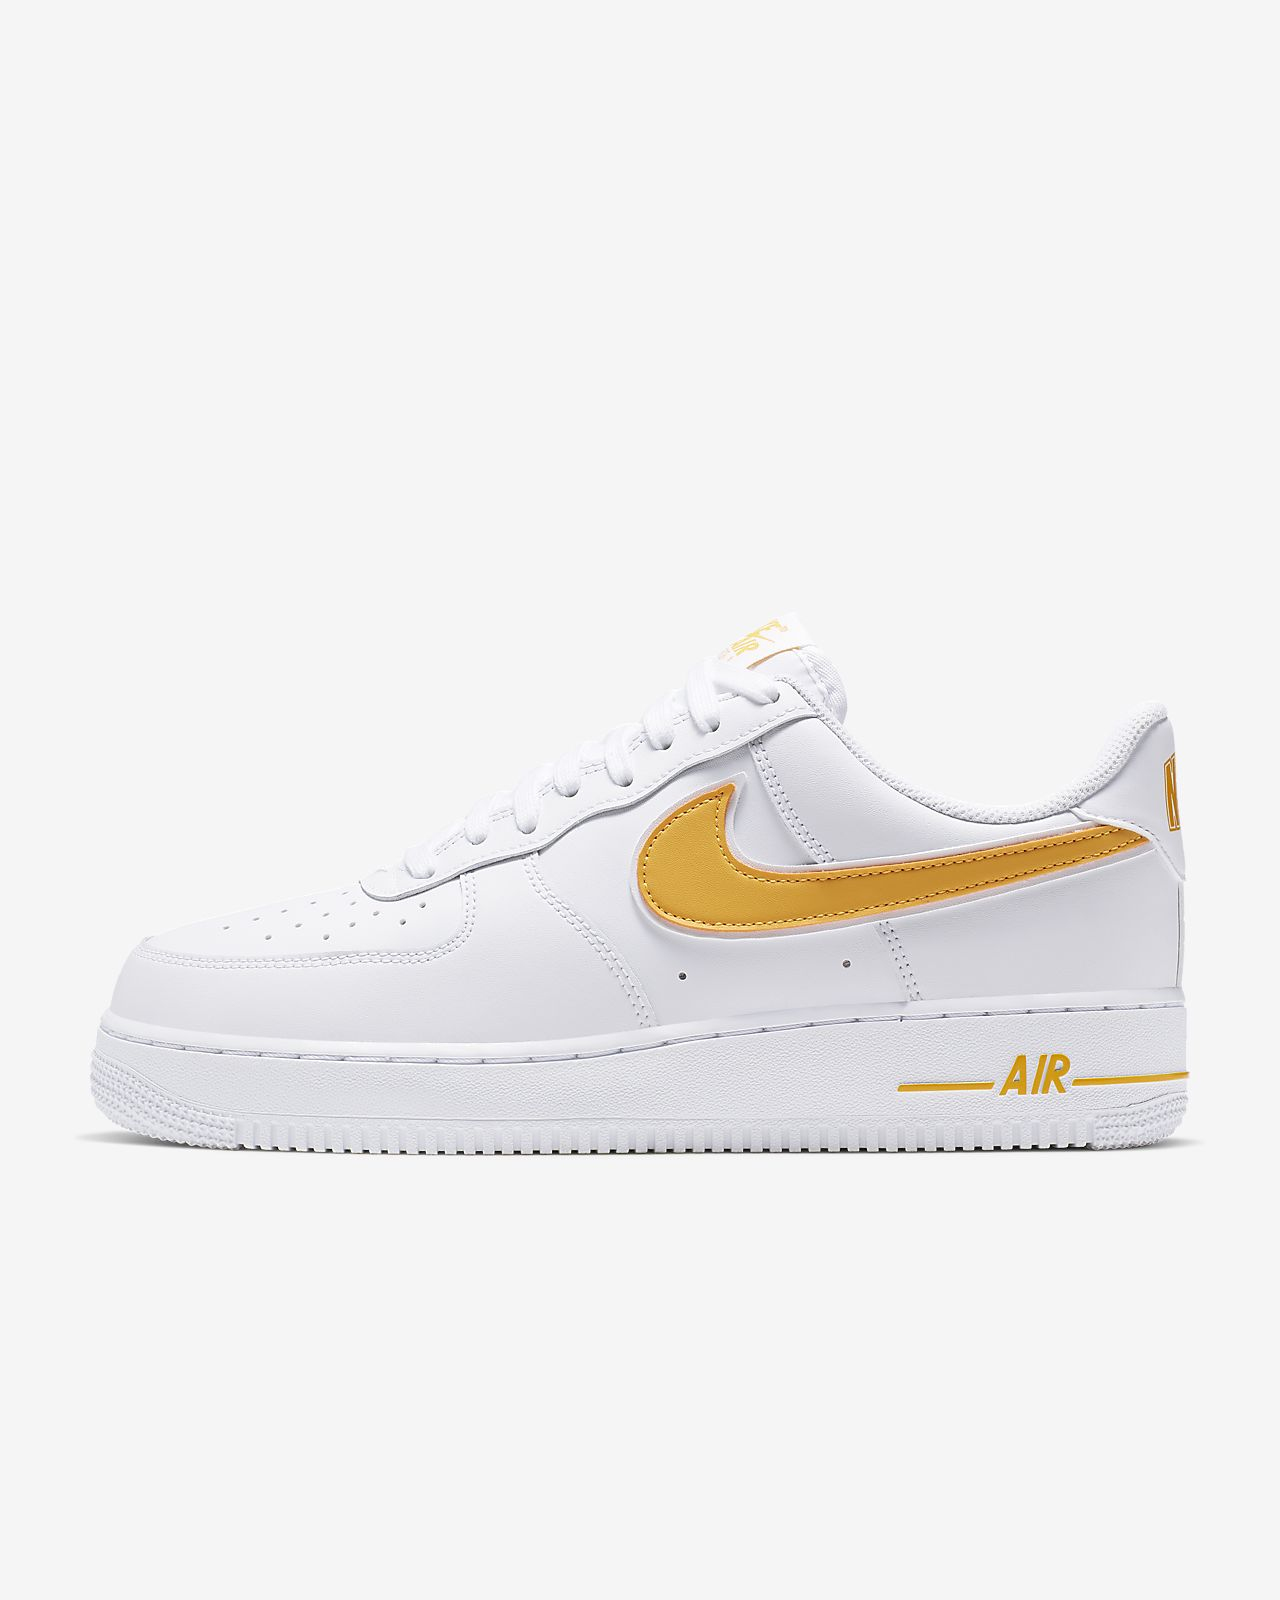 22117b50c386 Nike Air Force 1 '07 Men's Shoe. Nike.com GB